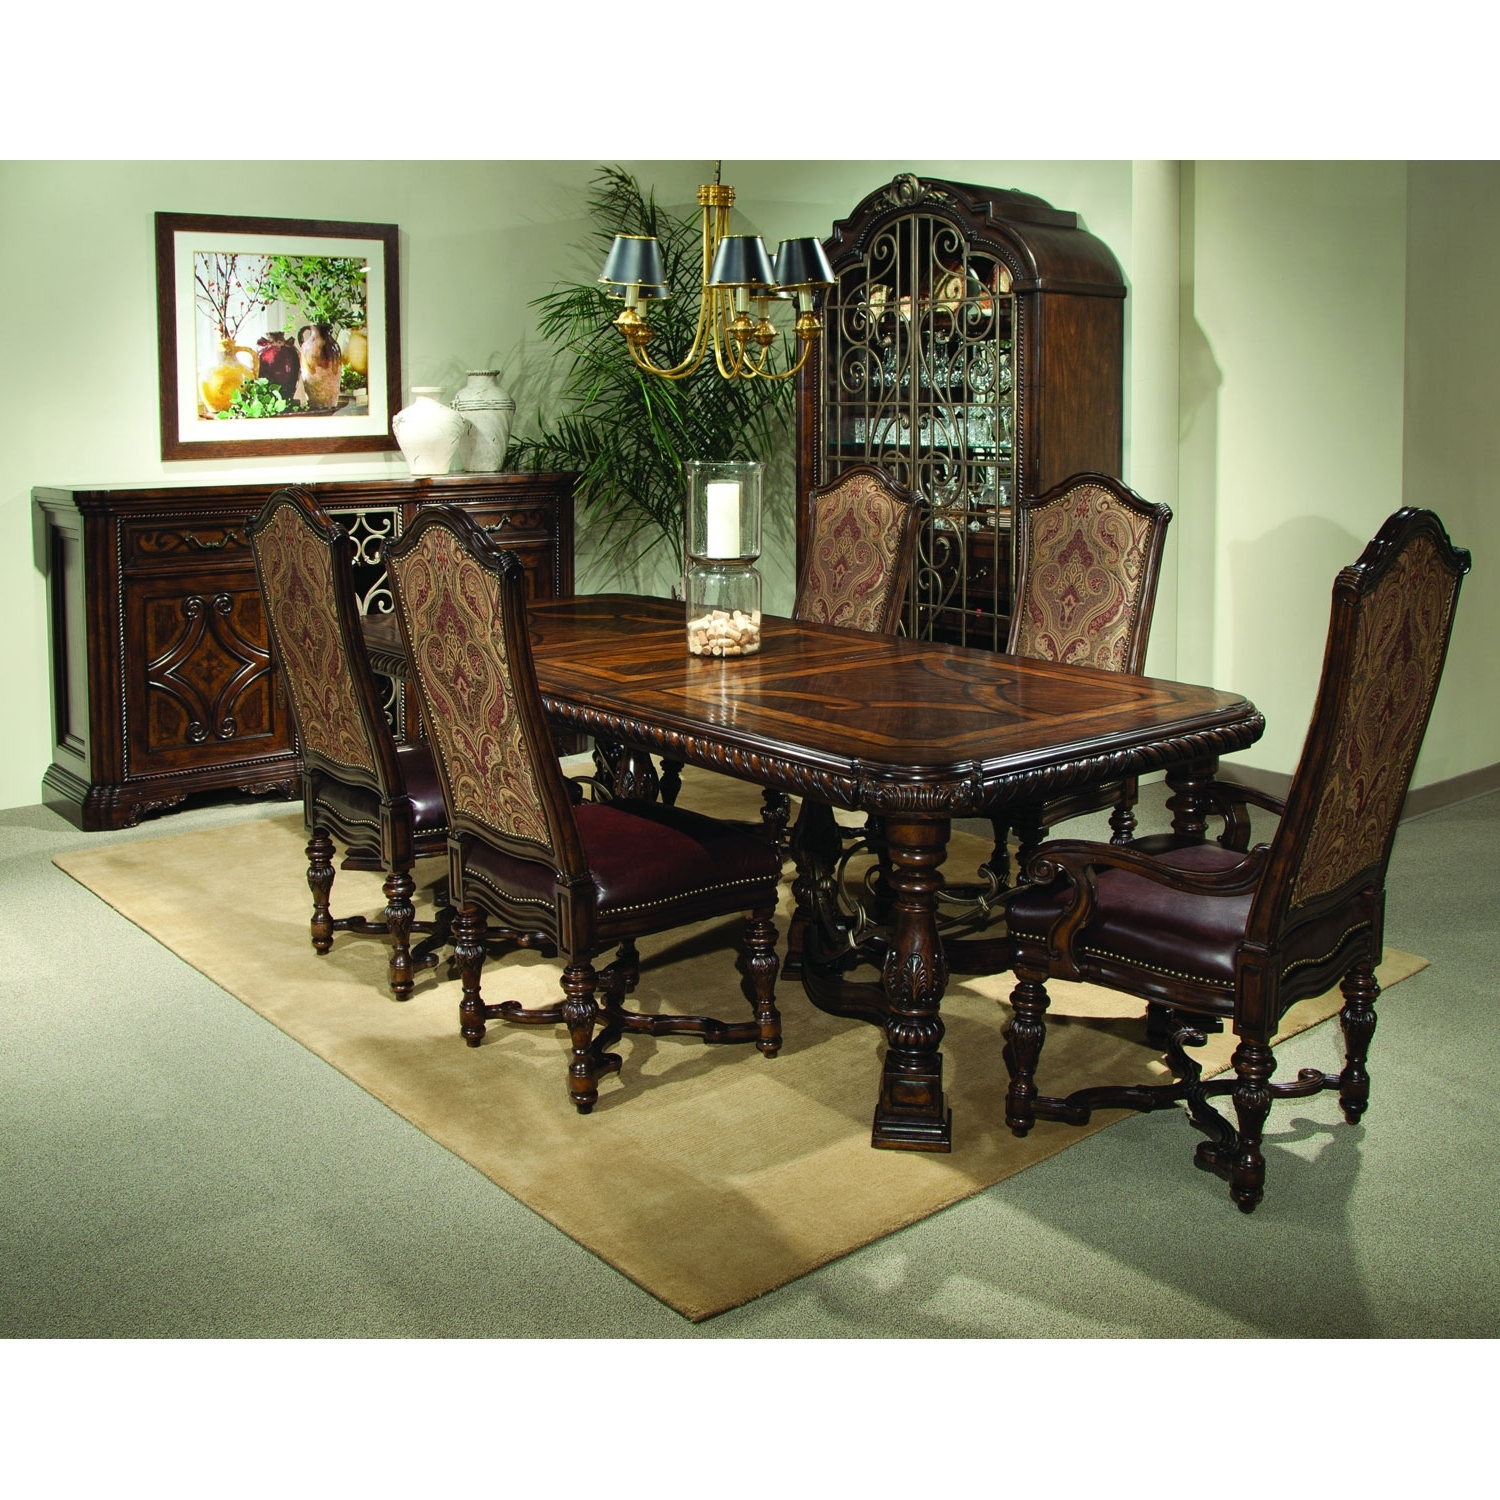 A.r.t. Furniture Valencia Trestle Dining Table 209221 2304 (Gallery 7 of 25)